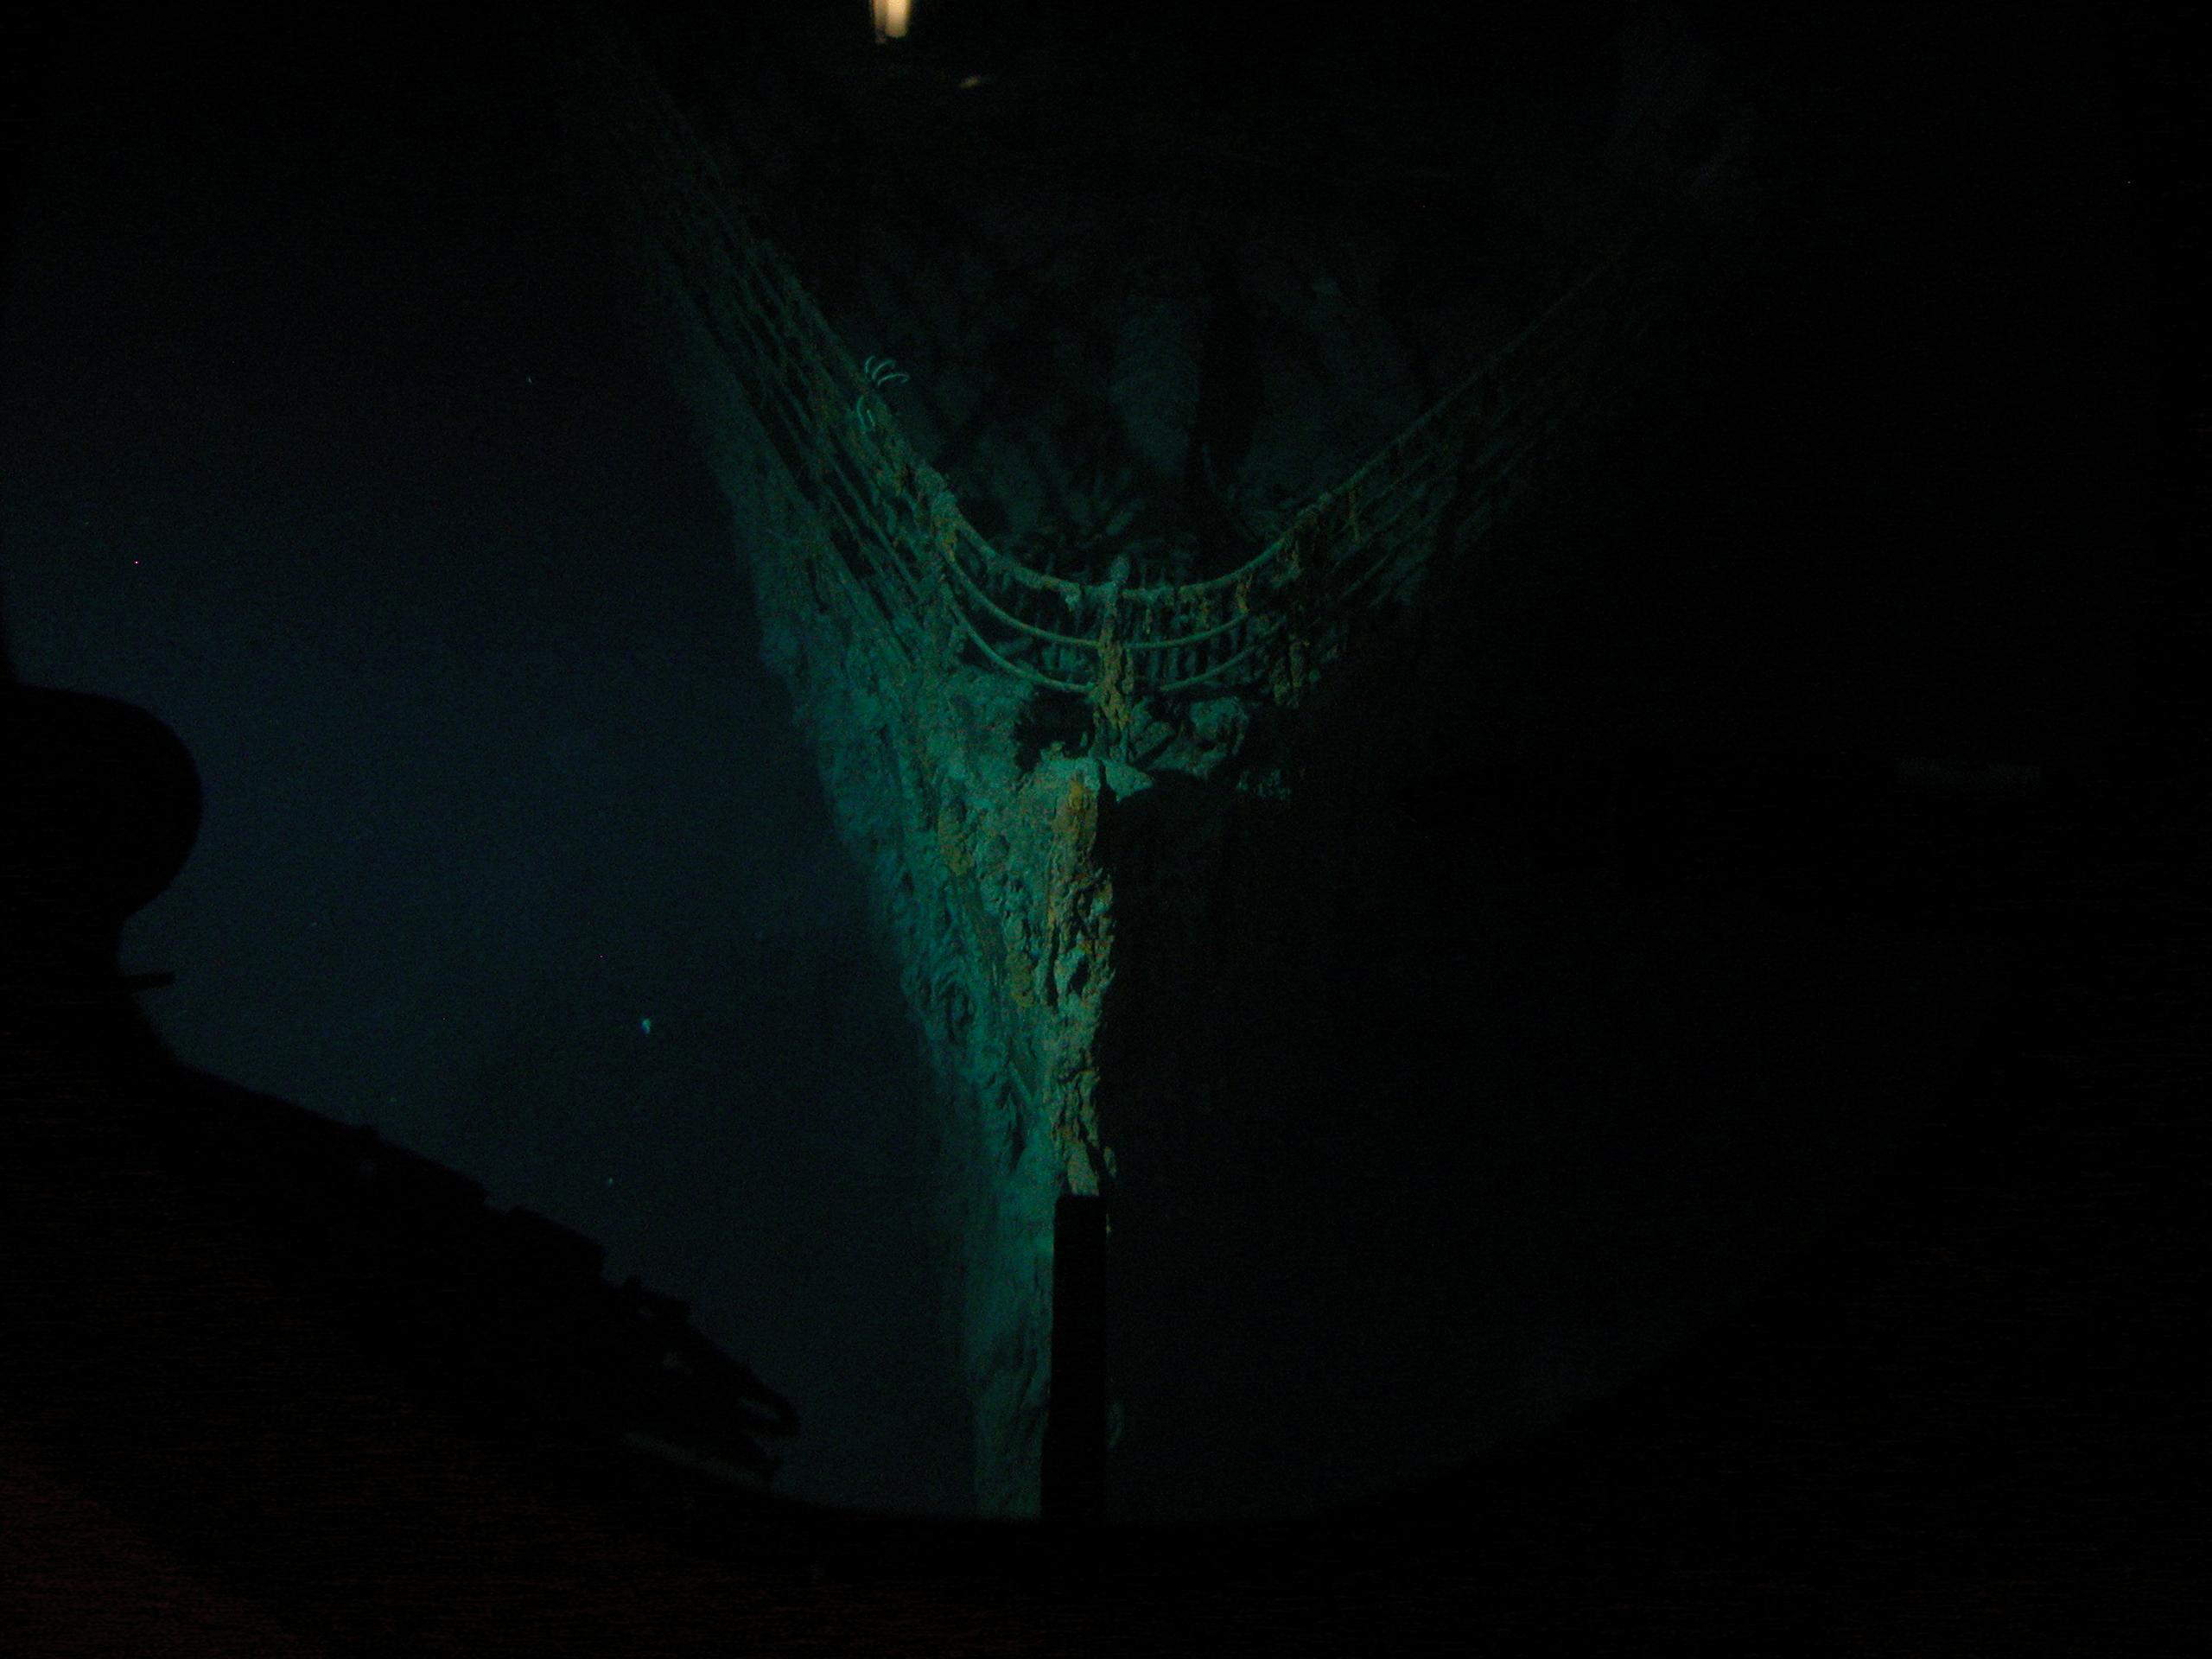 Titanic 012, the bow is the first thing I see on the wreck WOW